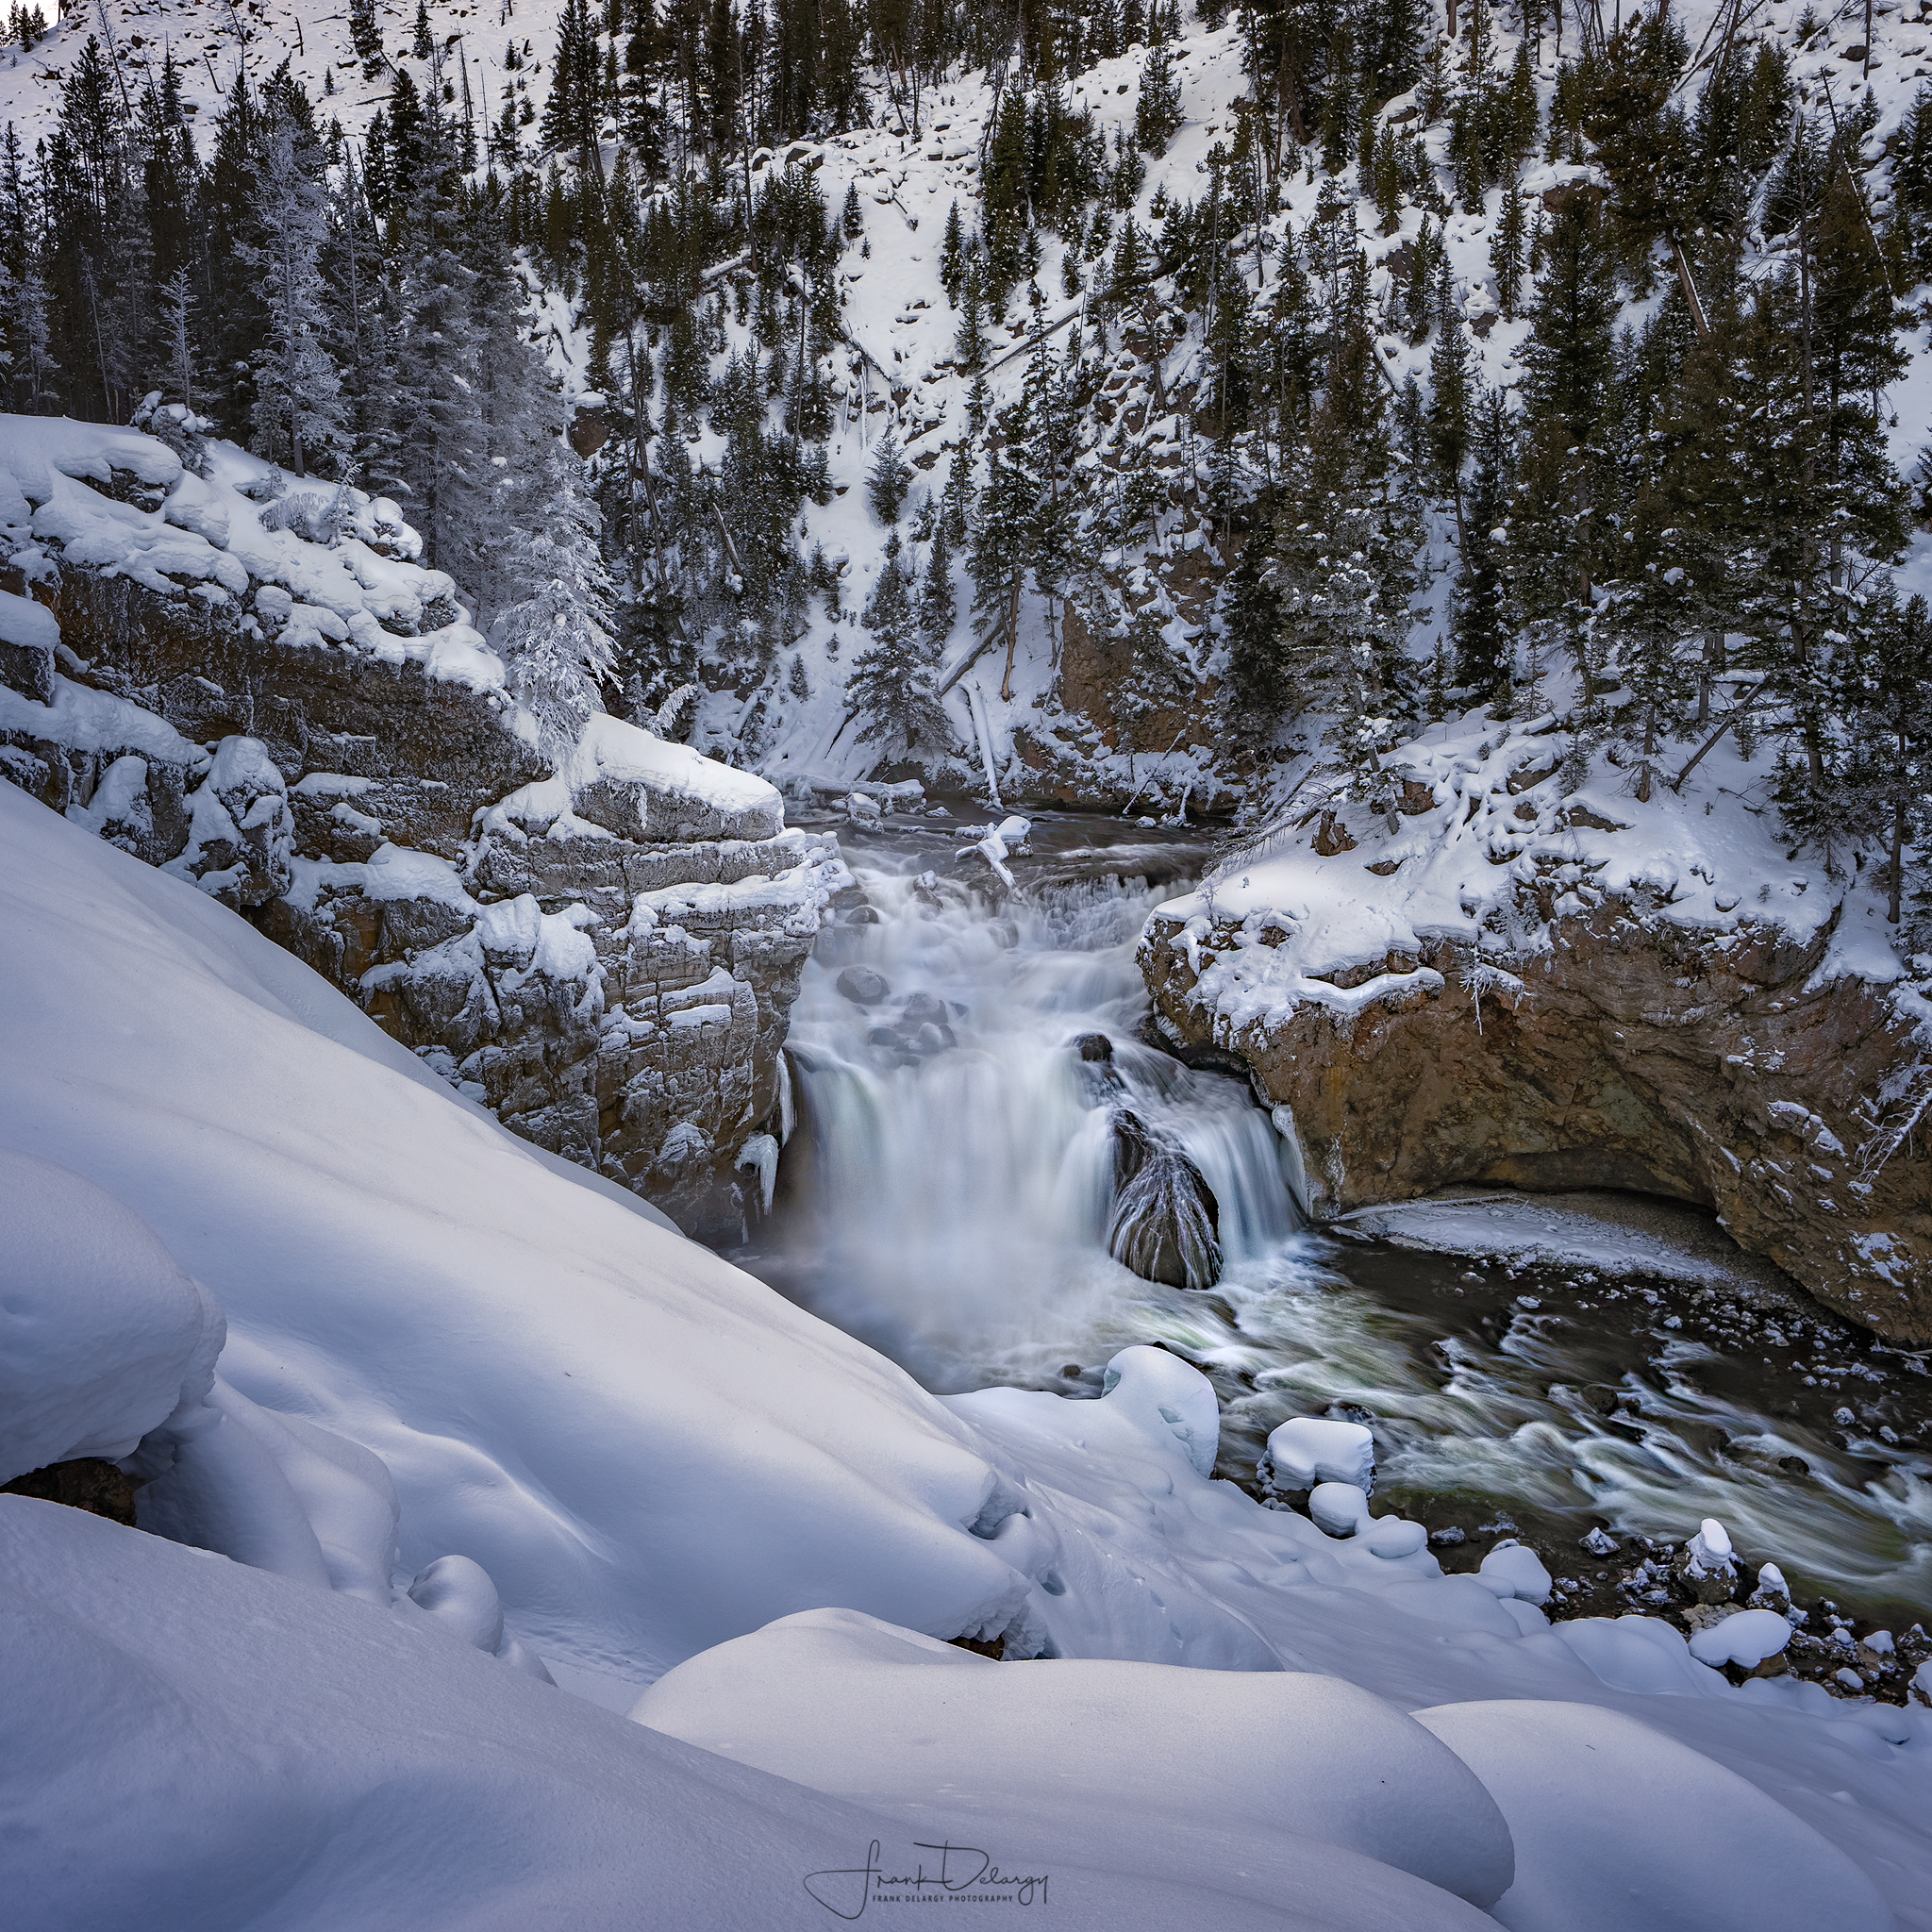 Something about a waterfall in the snow... the snow is whiter than the river usually.